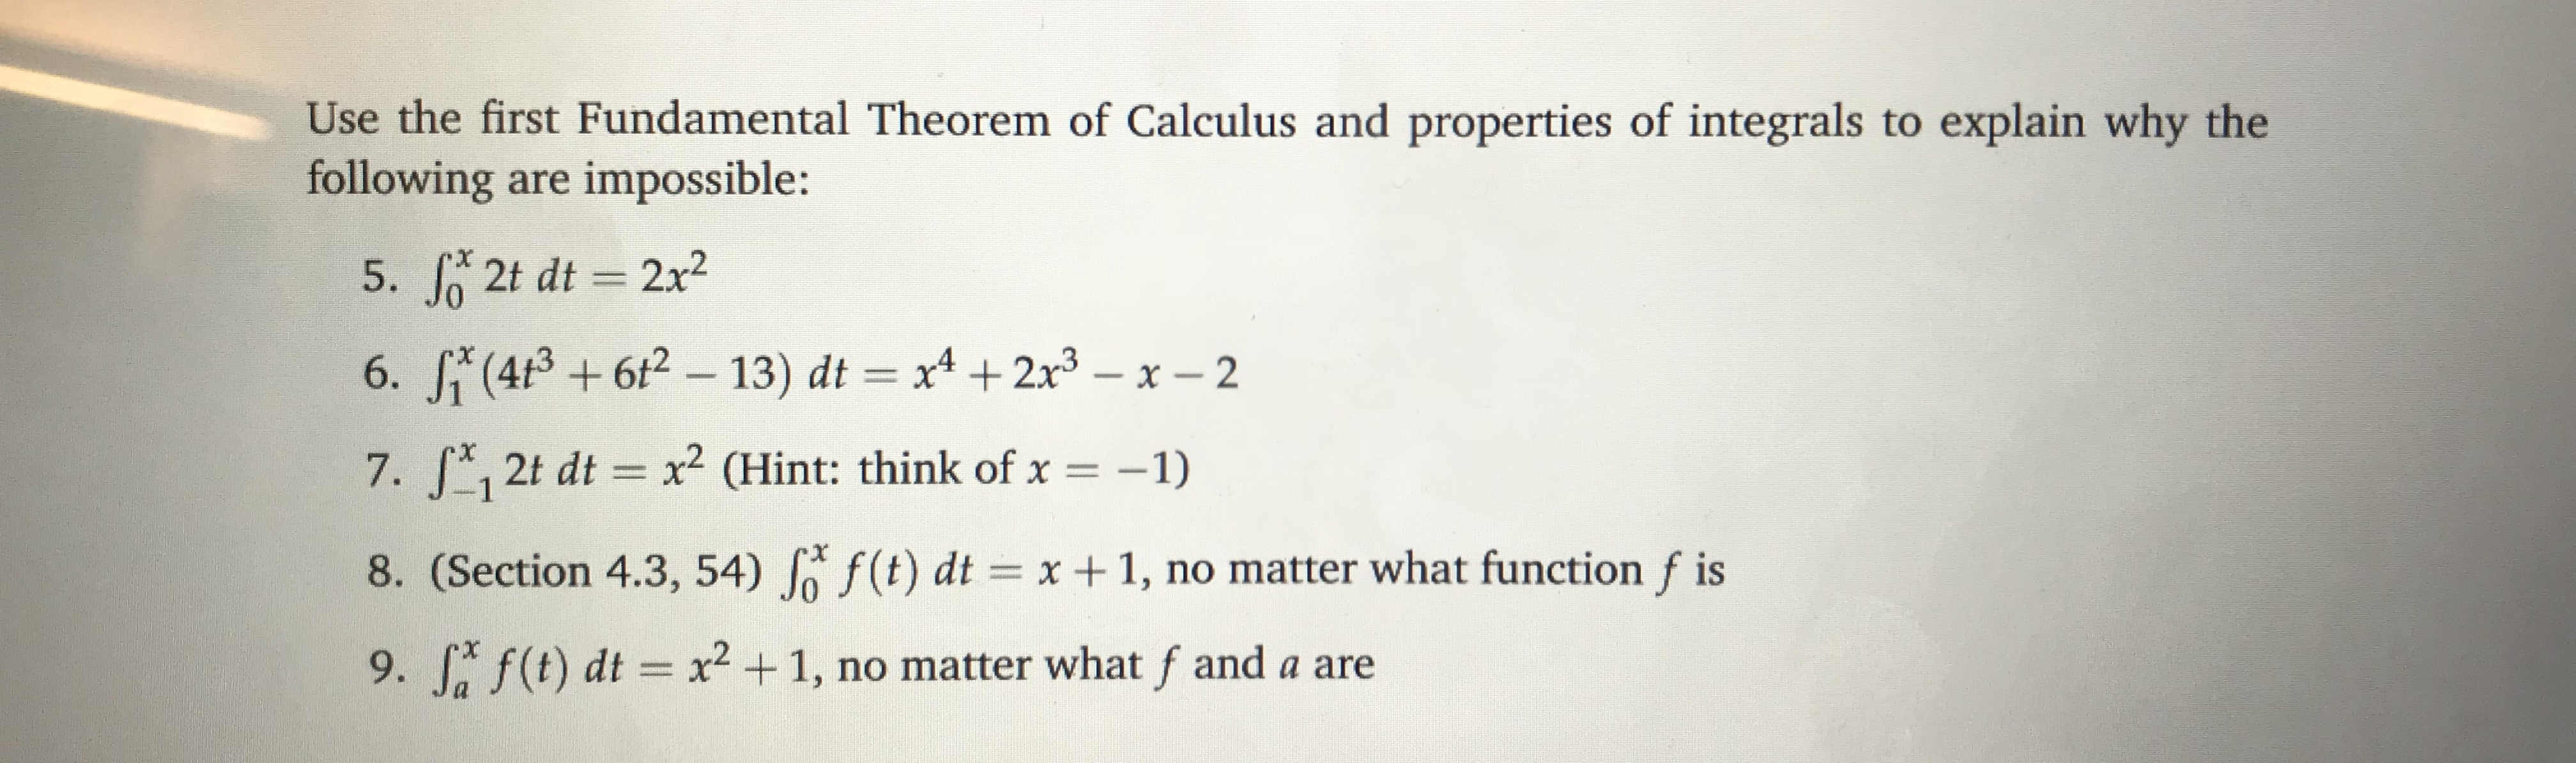 Use the first Fundamental Theorem of Calculus and properties of integrals to explain why the following are impossible: 5. J 2t dt 2x2 7. 12t dt 2 CHint: think of x-1) 8. (Section 4.3, 54) Jo f (t) dtx1, no matter what function f is 9, f,f(t) dt x2 + 1, no matter what f and a are